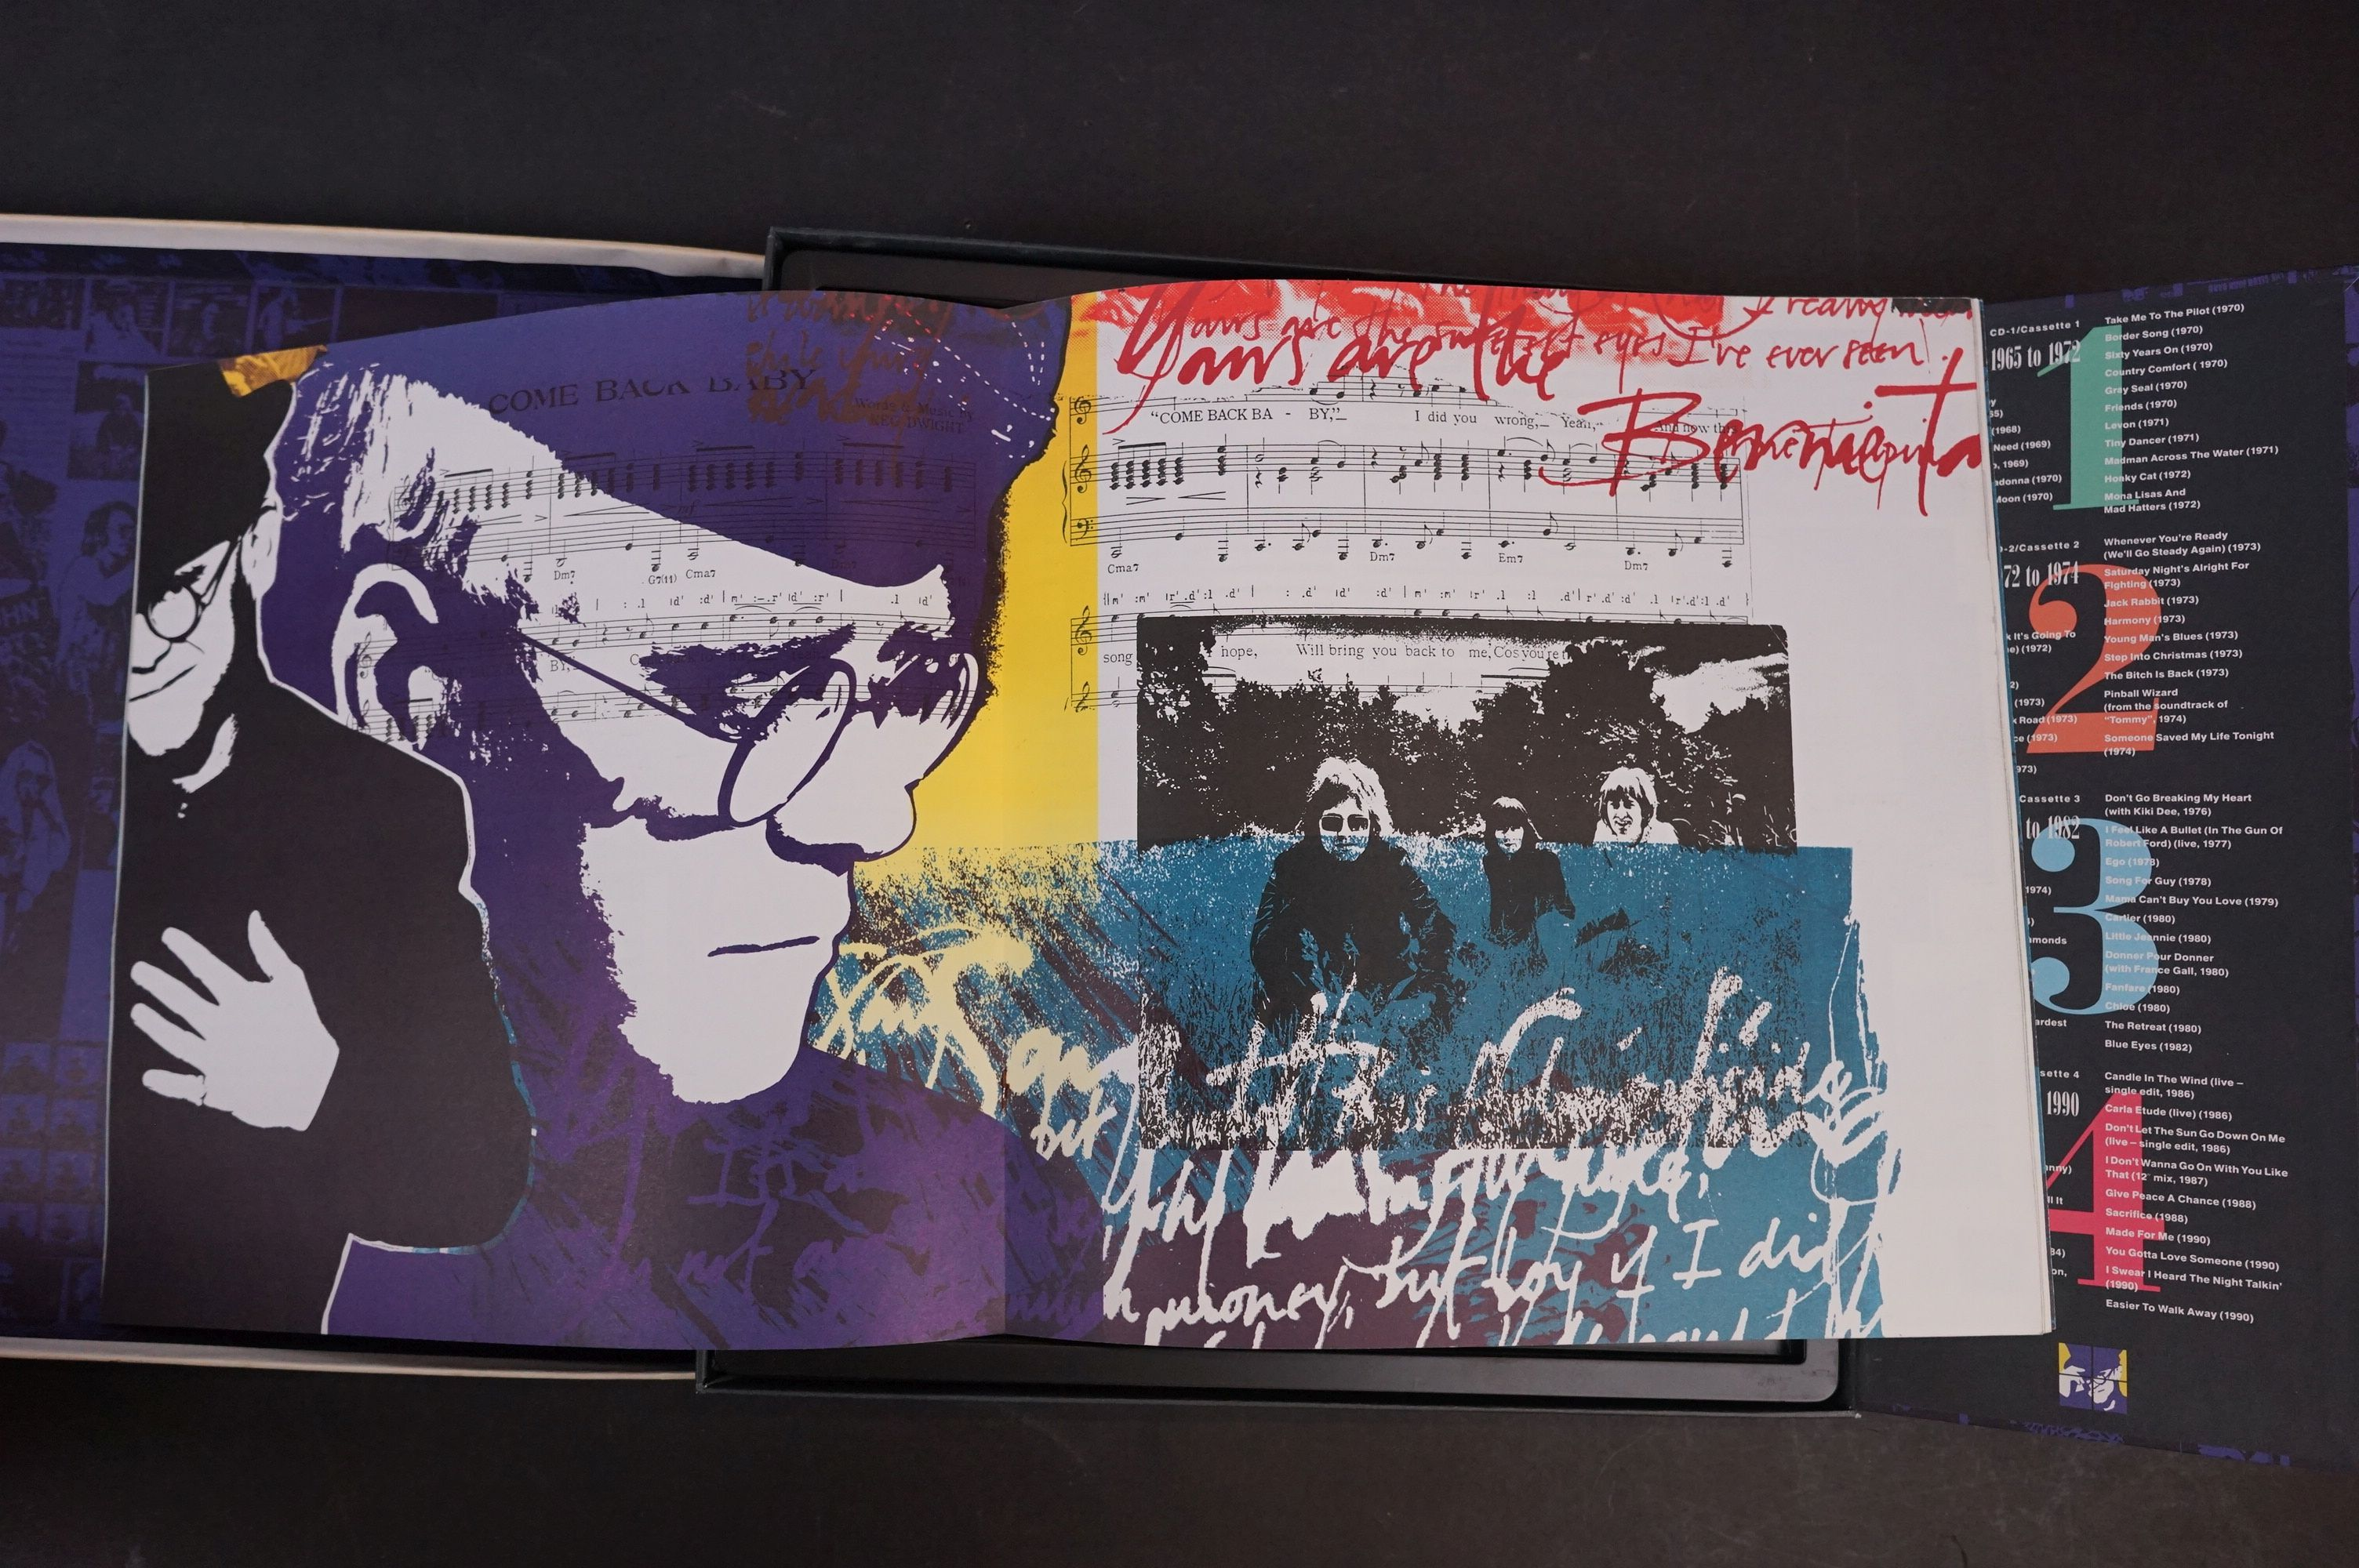 CD - Elton John To Be Continued Box Set MCAD4 - 10110 complete and vg - Image 4 of 6